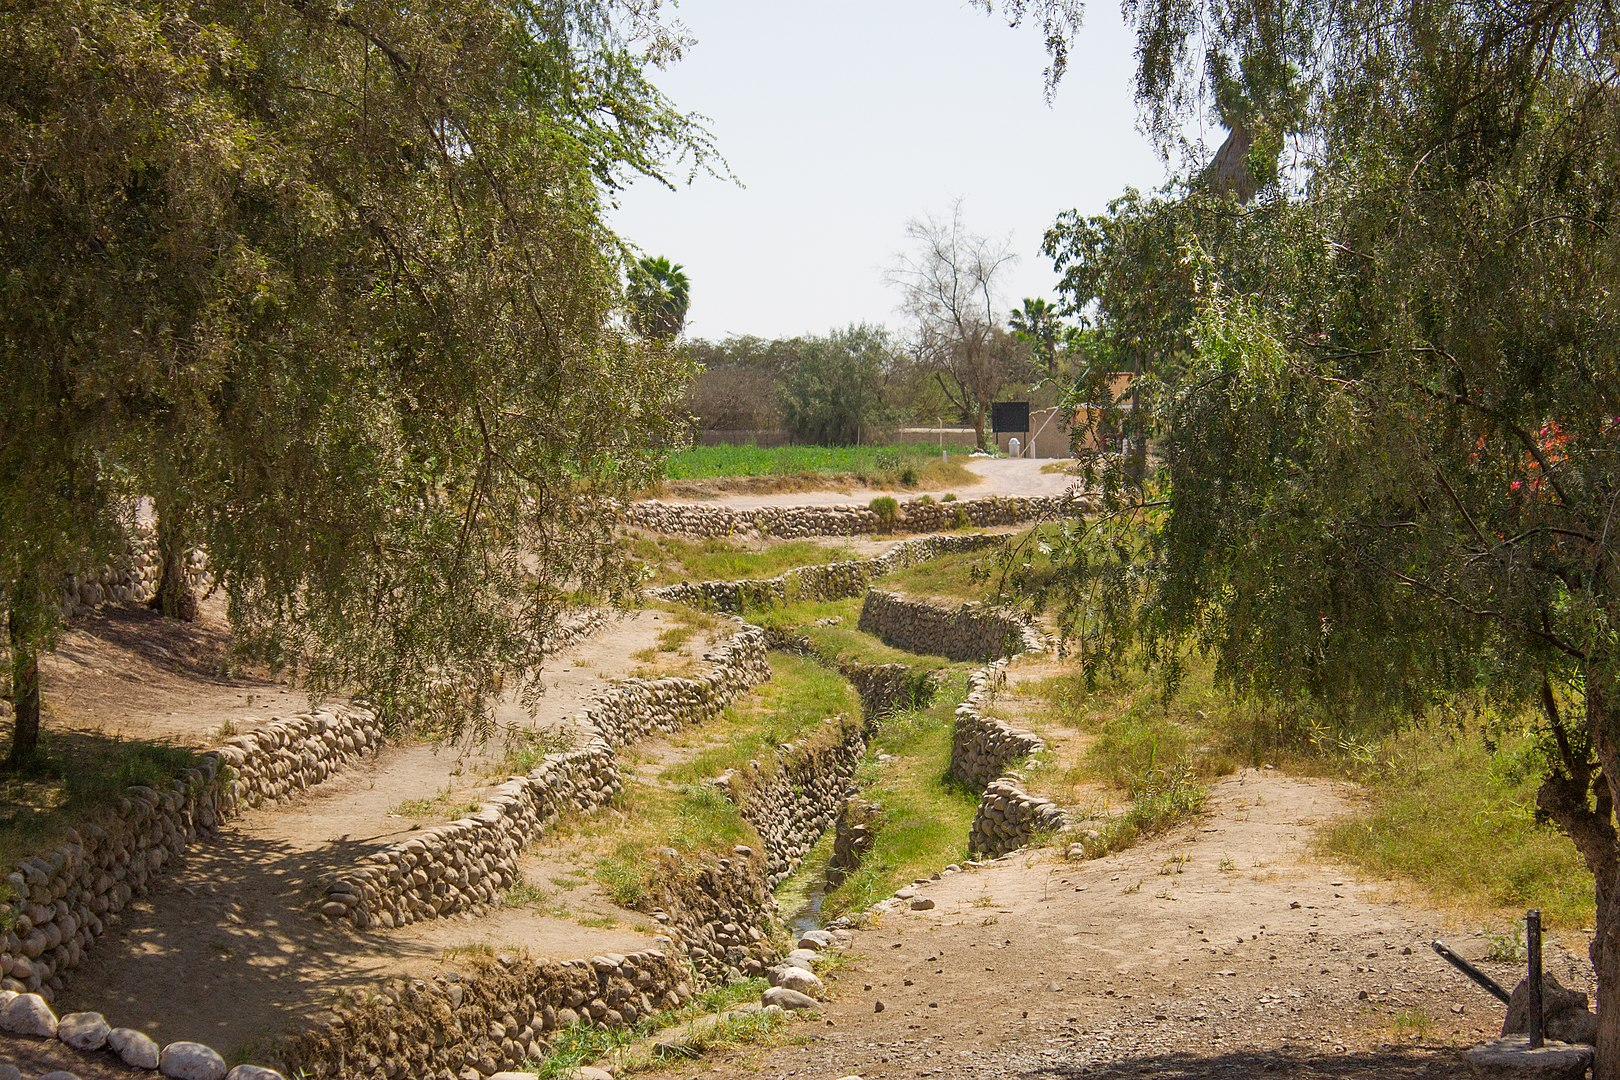 Cantalloc Aqueduct Discharge Channel